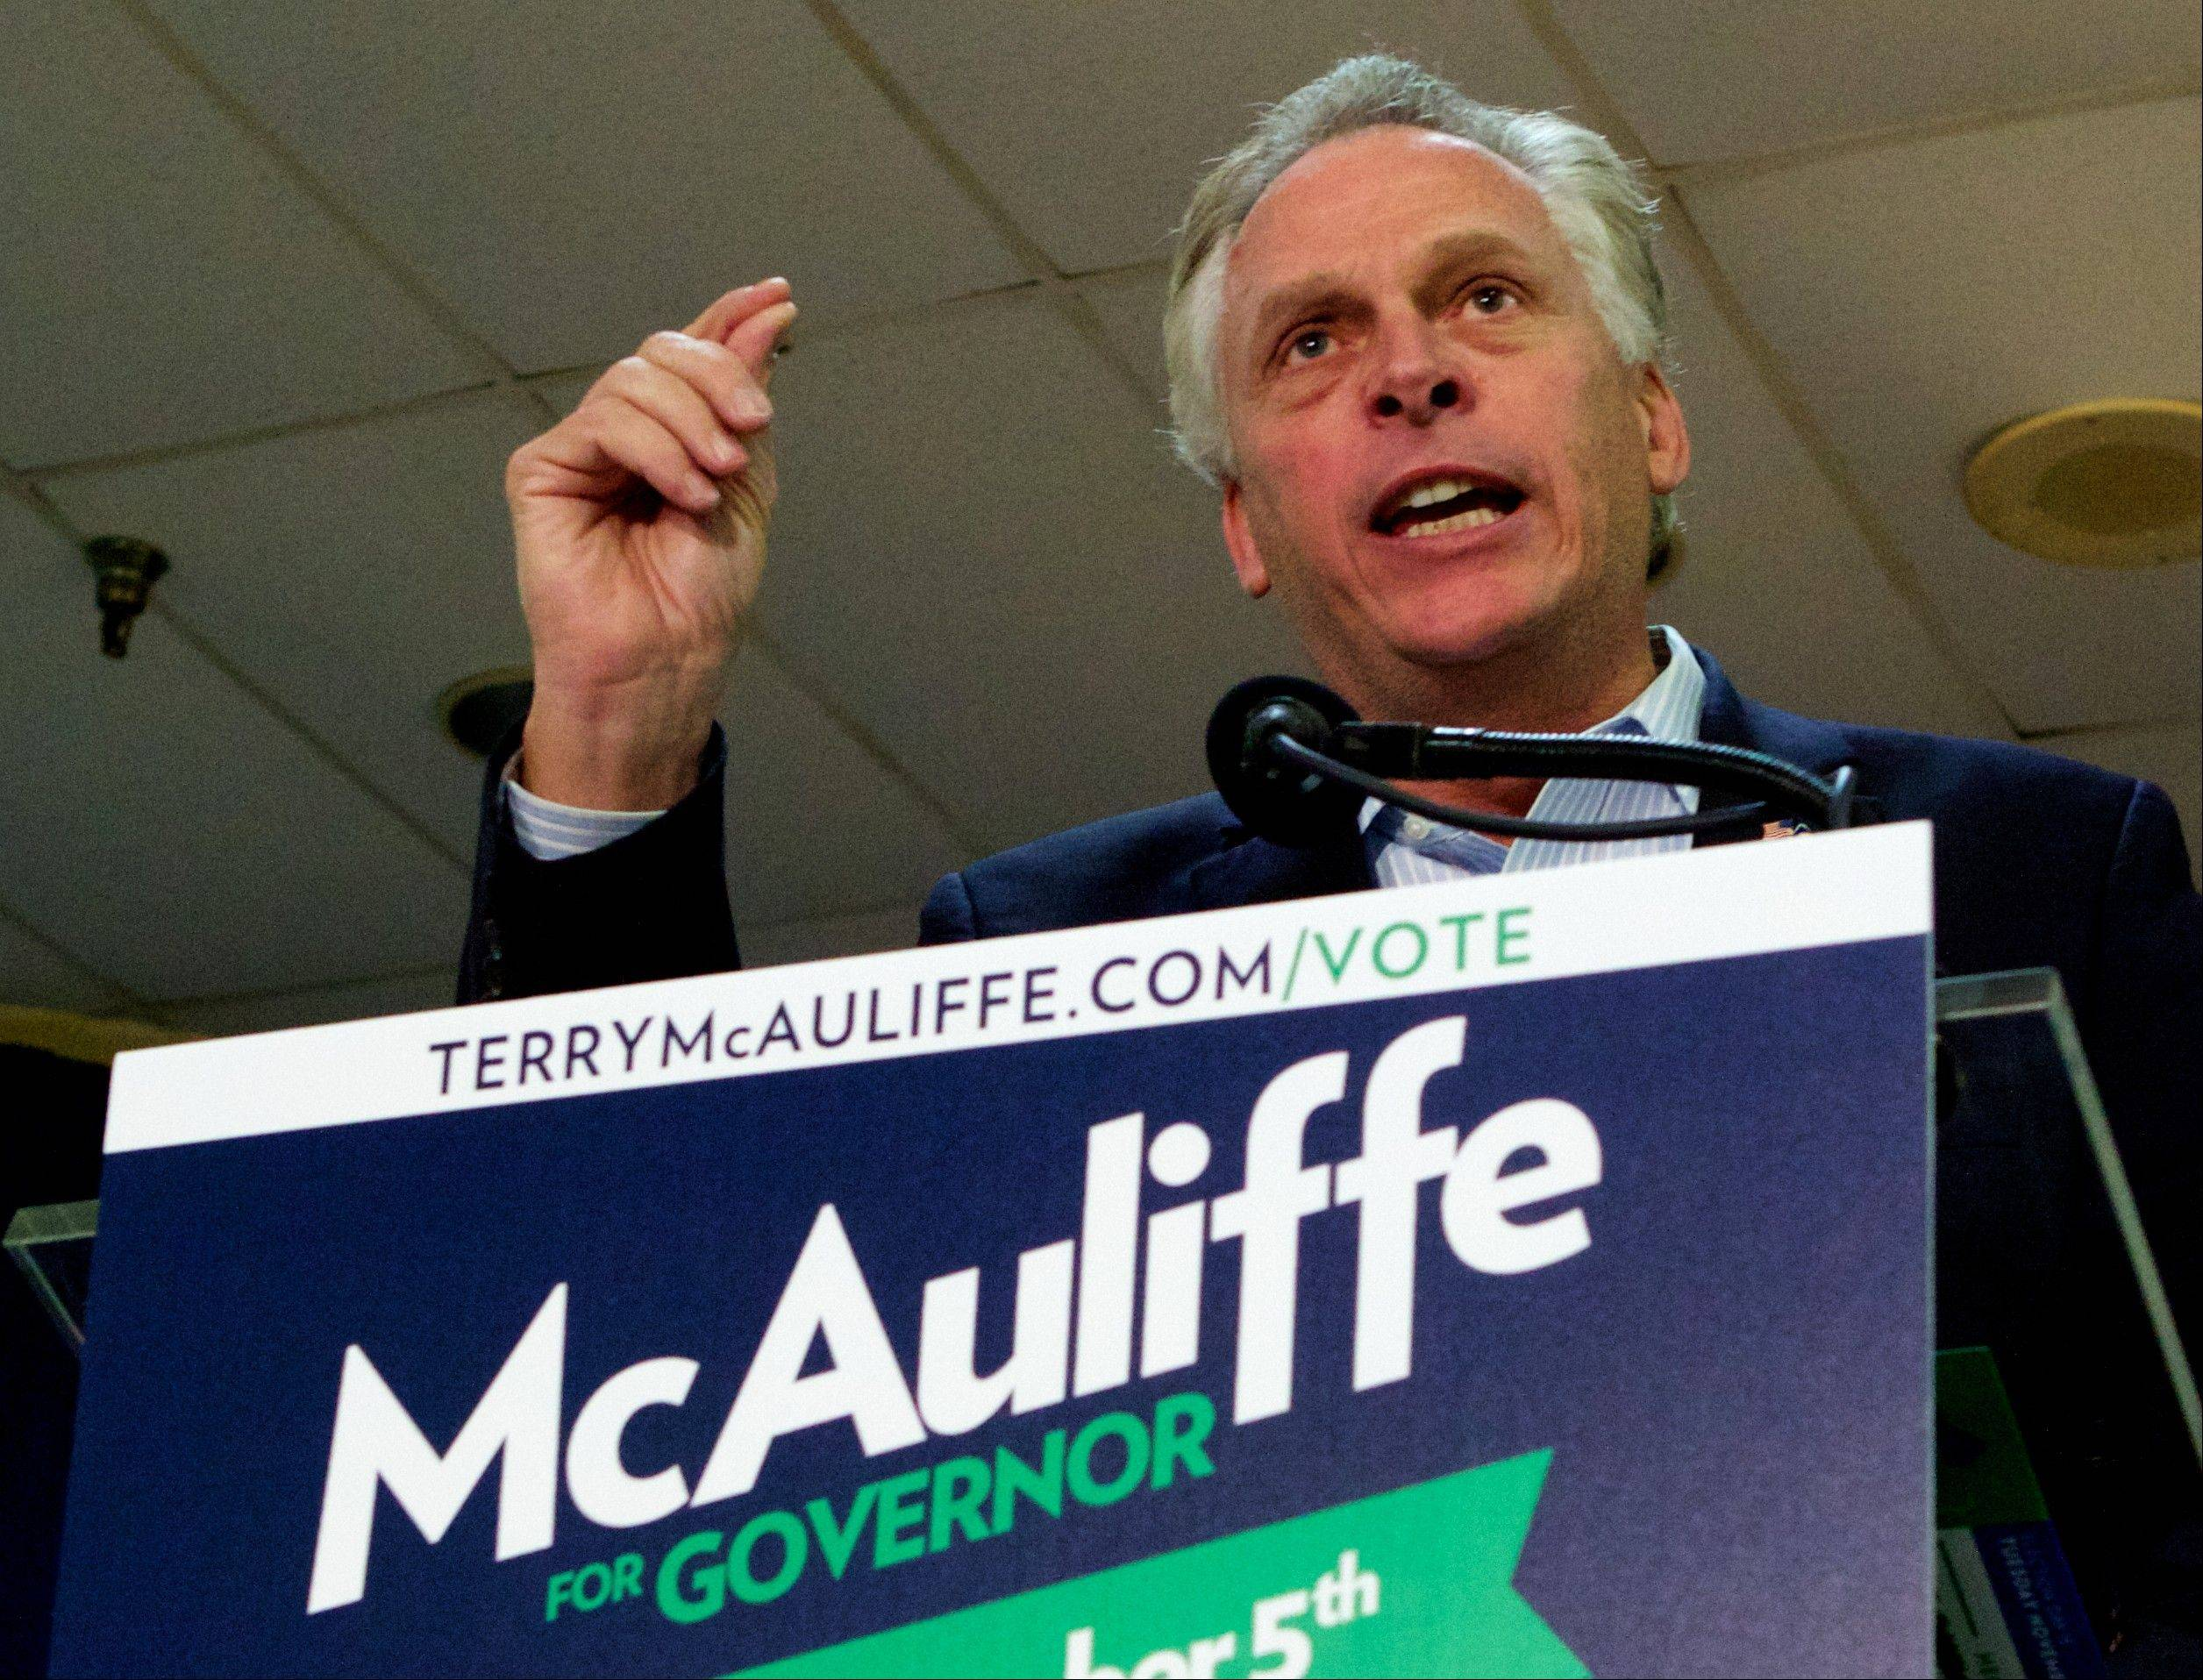 Virginia Democratic gubernatorial candidate Terry McAuliffe campaigns.